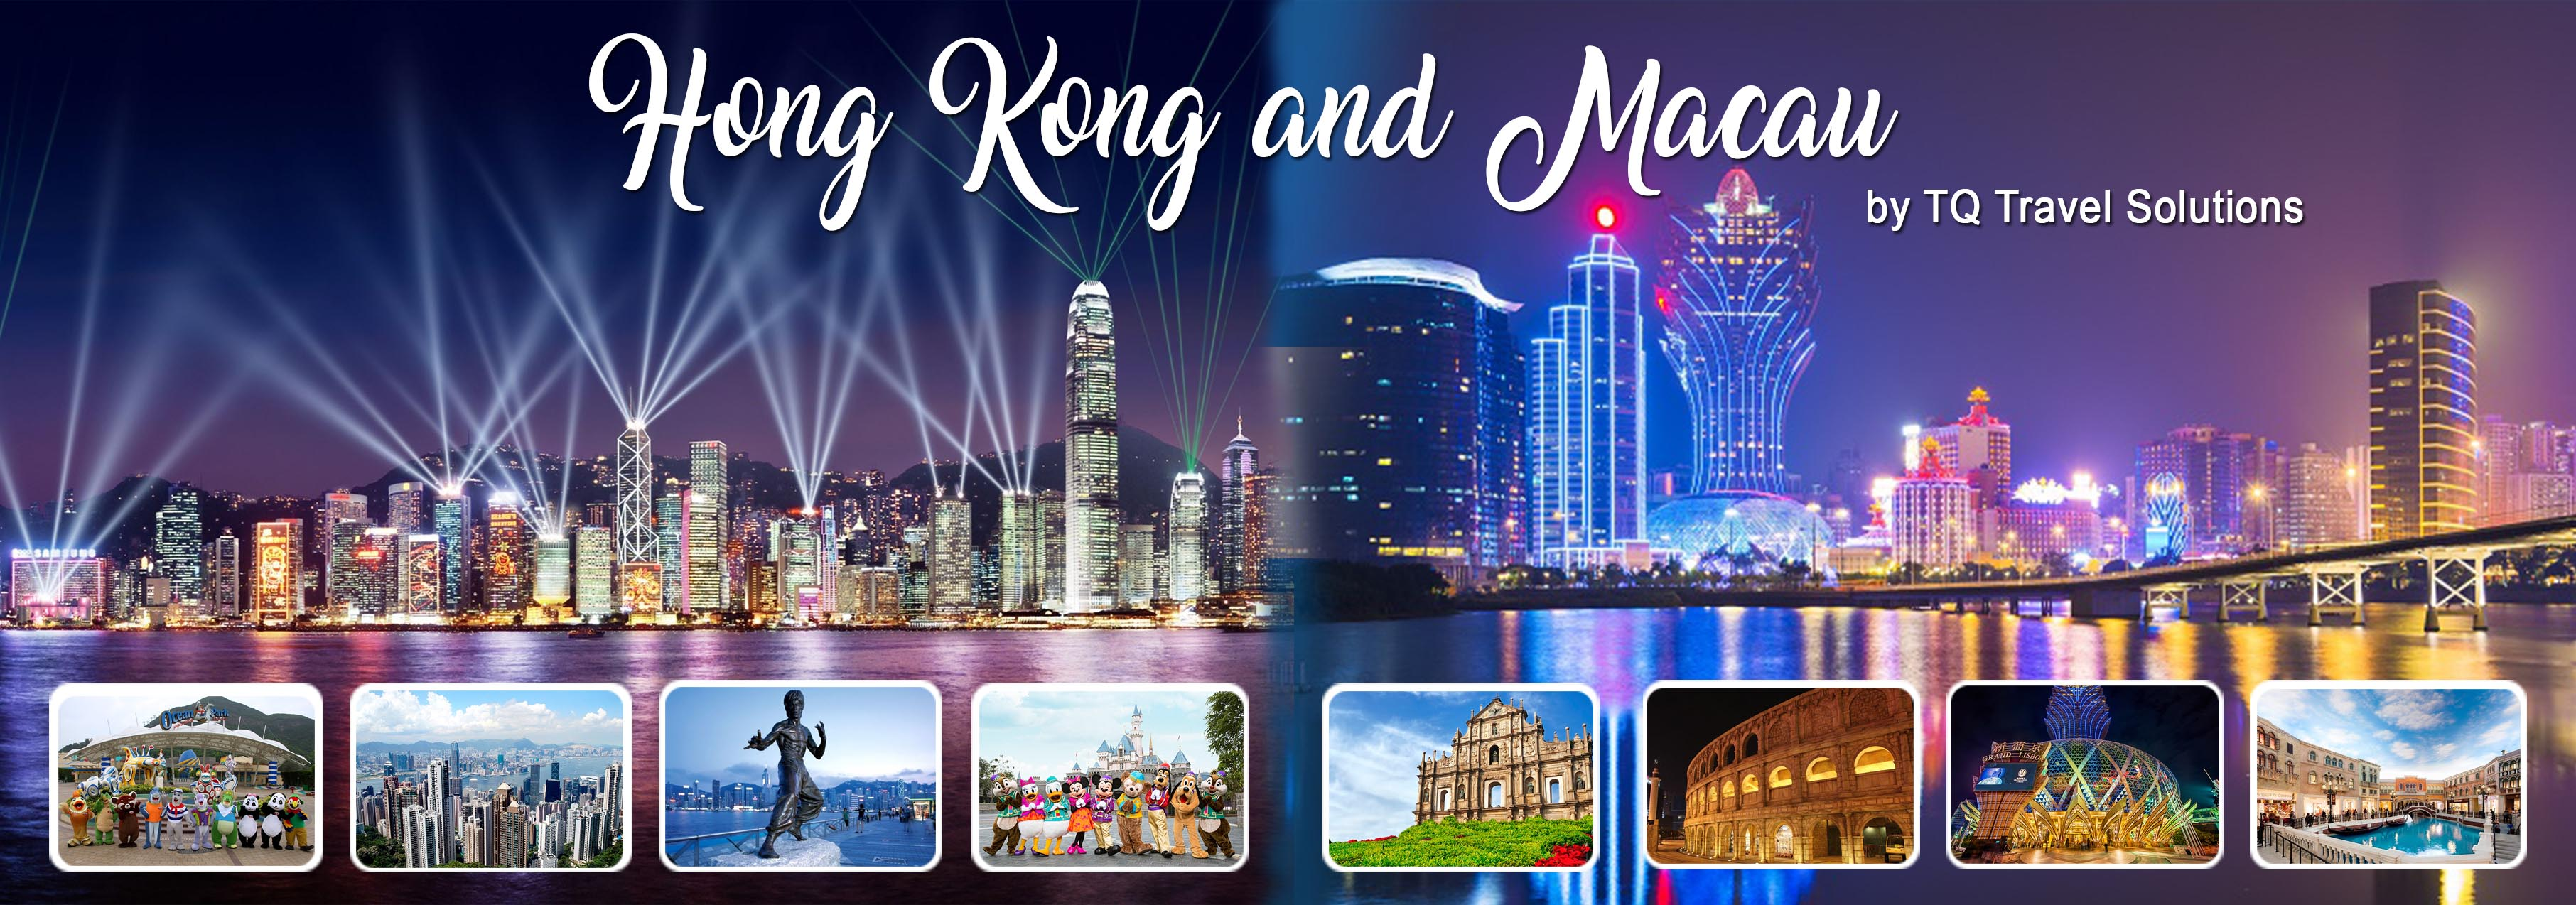 Hong Kong And Singapore Package Tour